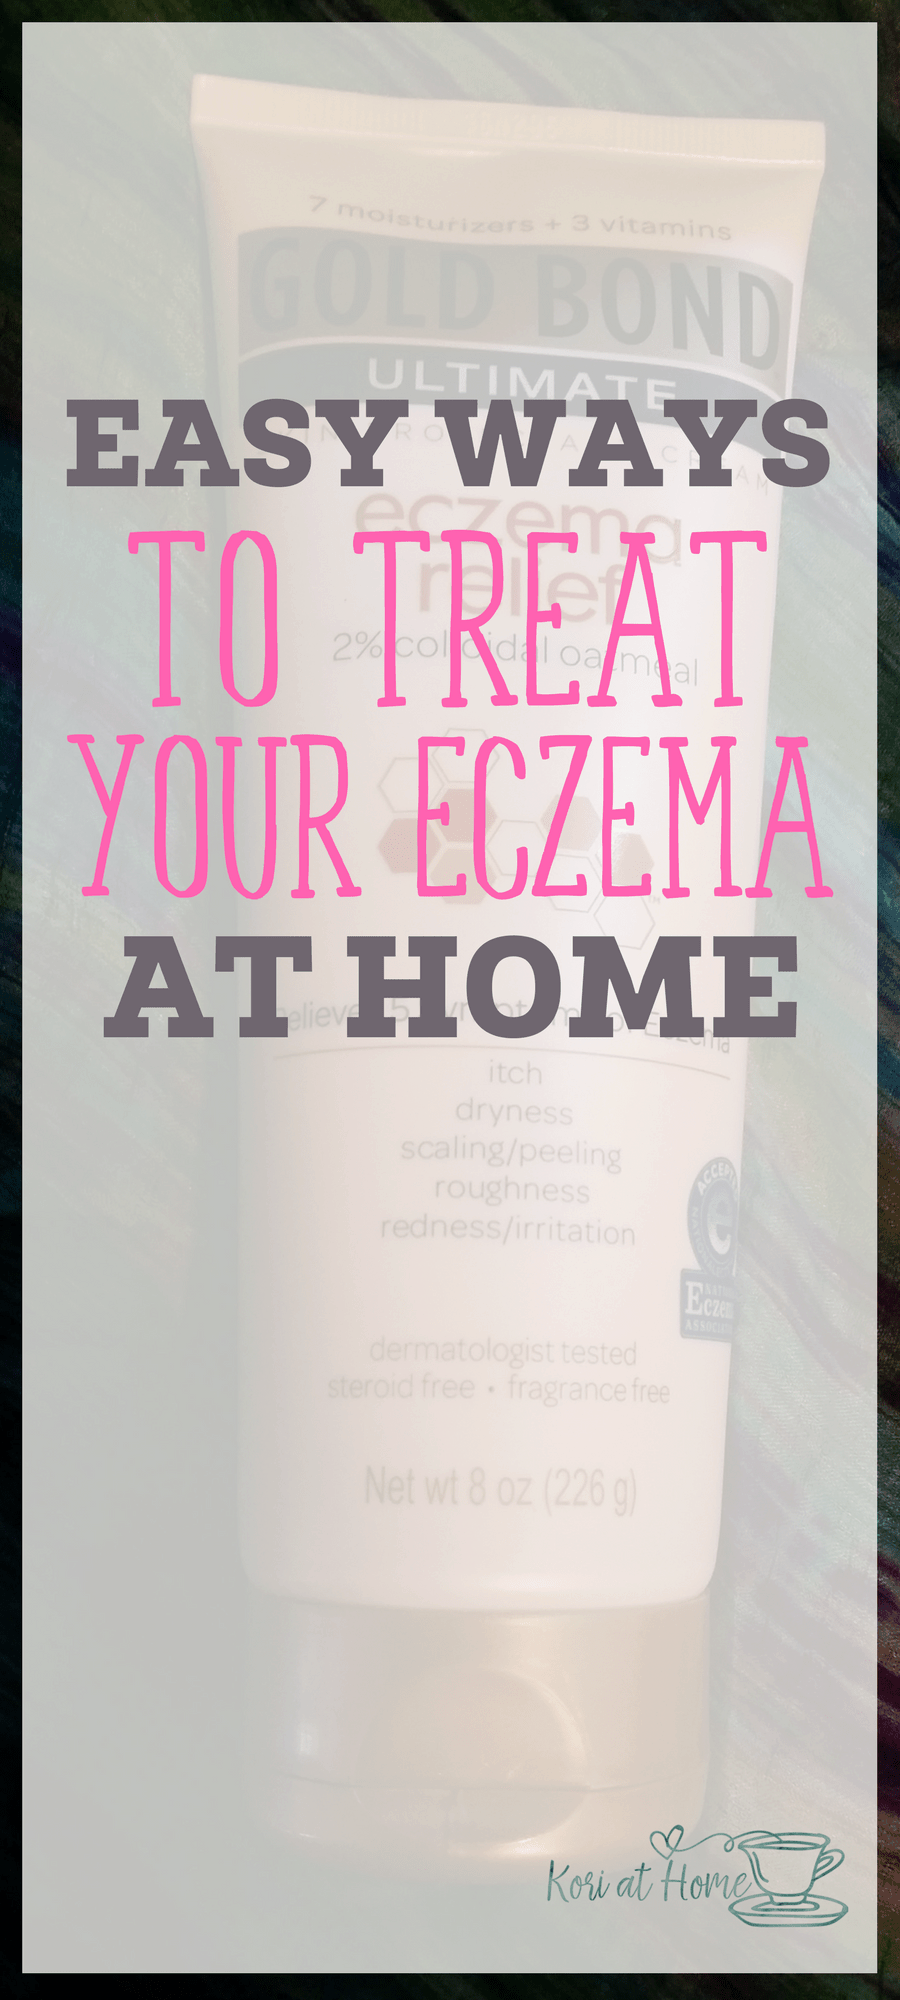 Easy Ways to Treat Your Eczema at Home 3